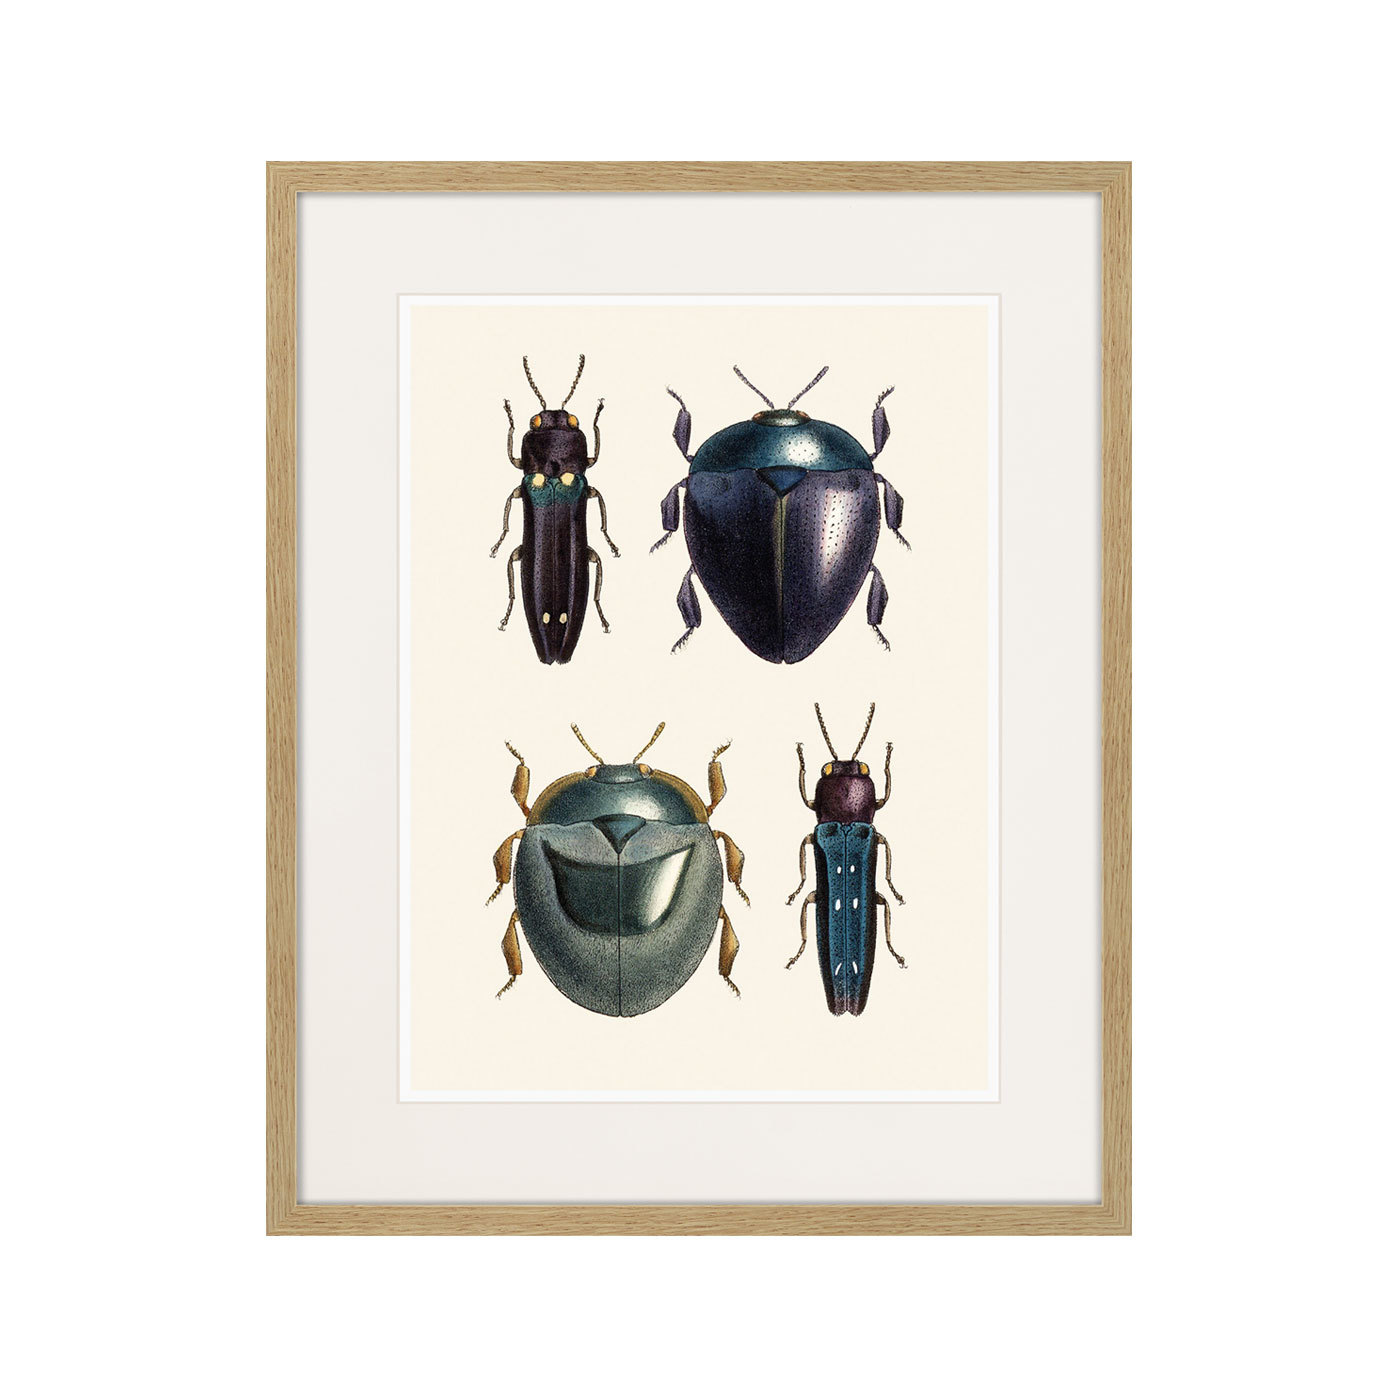 Assorted Beetles №1, 1735г.